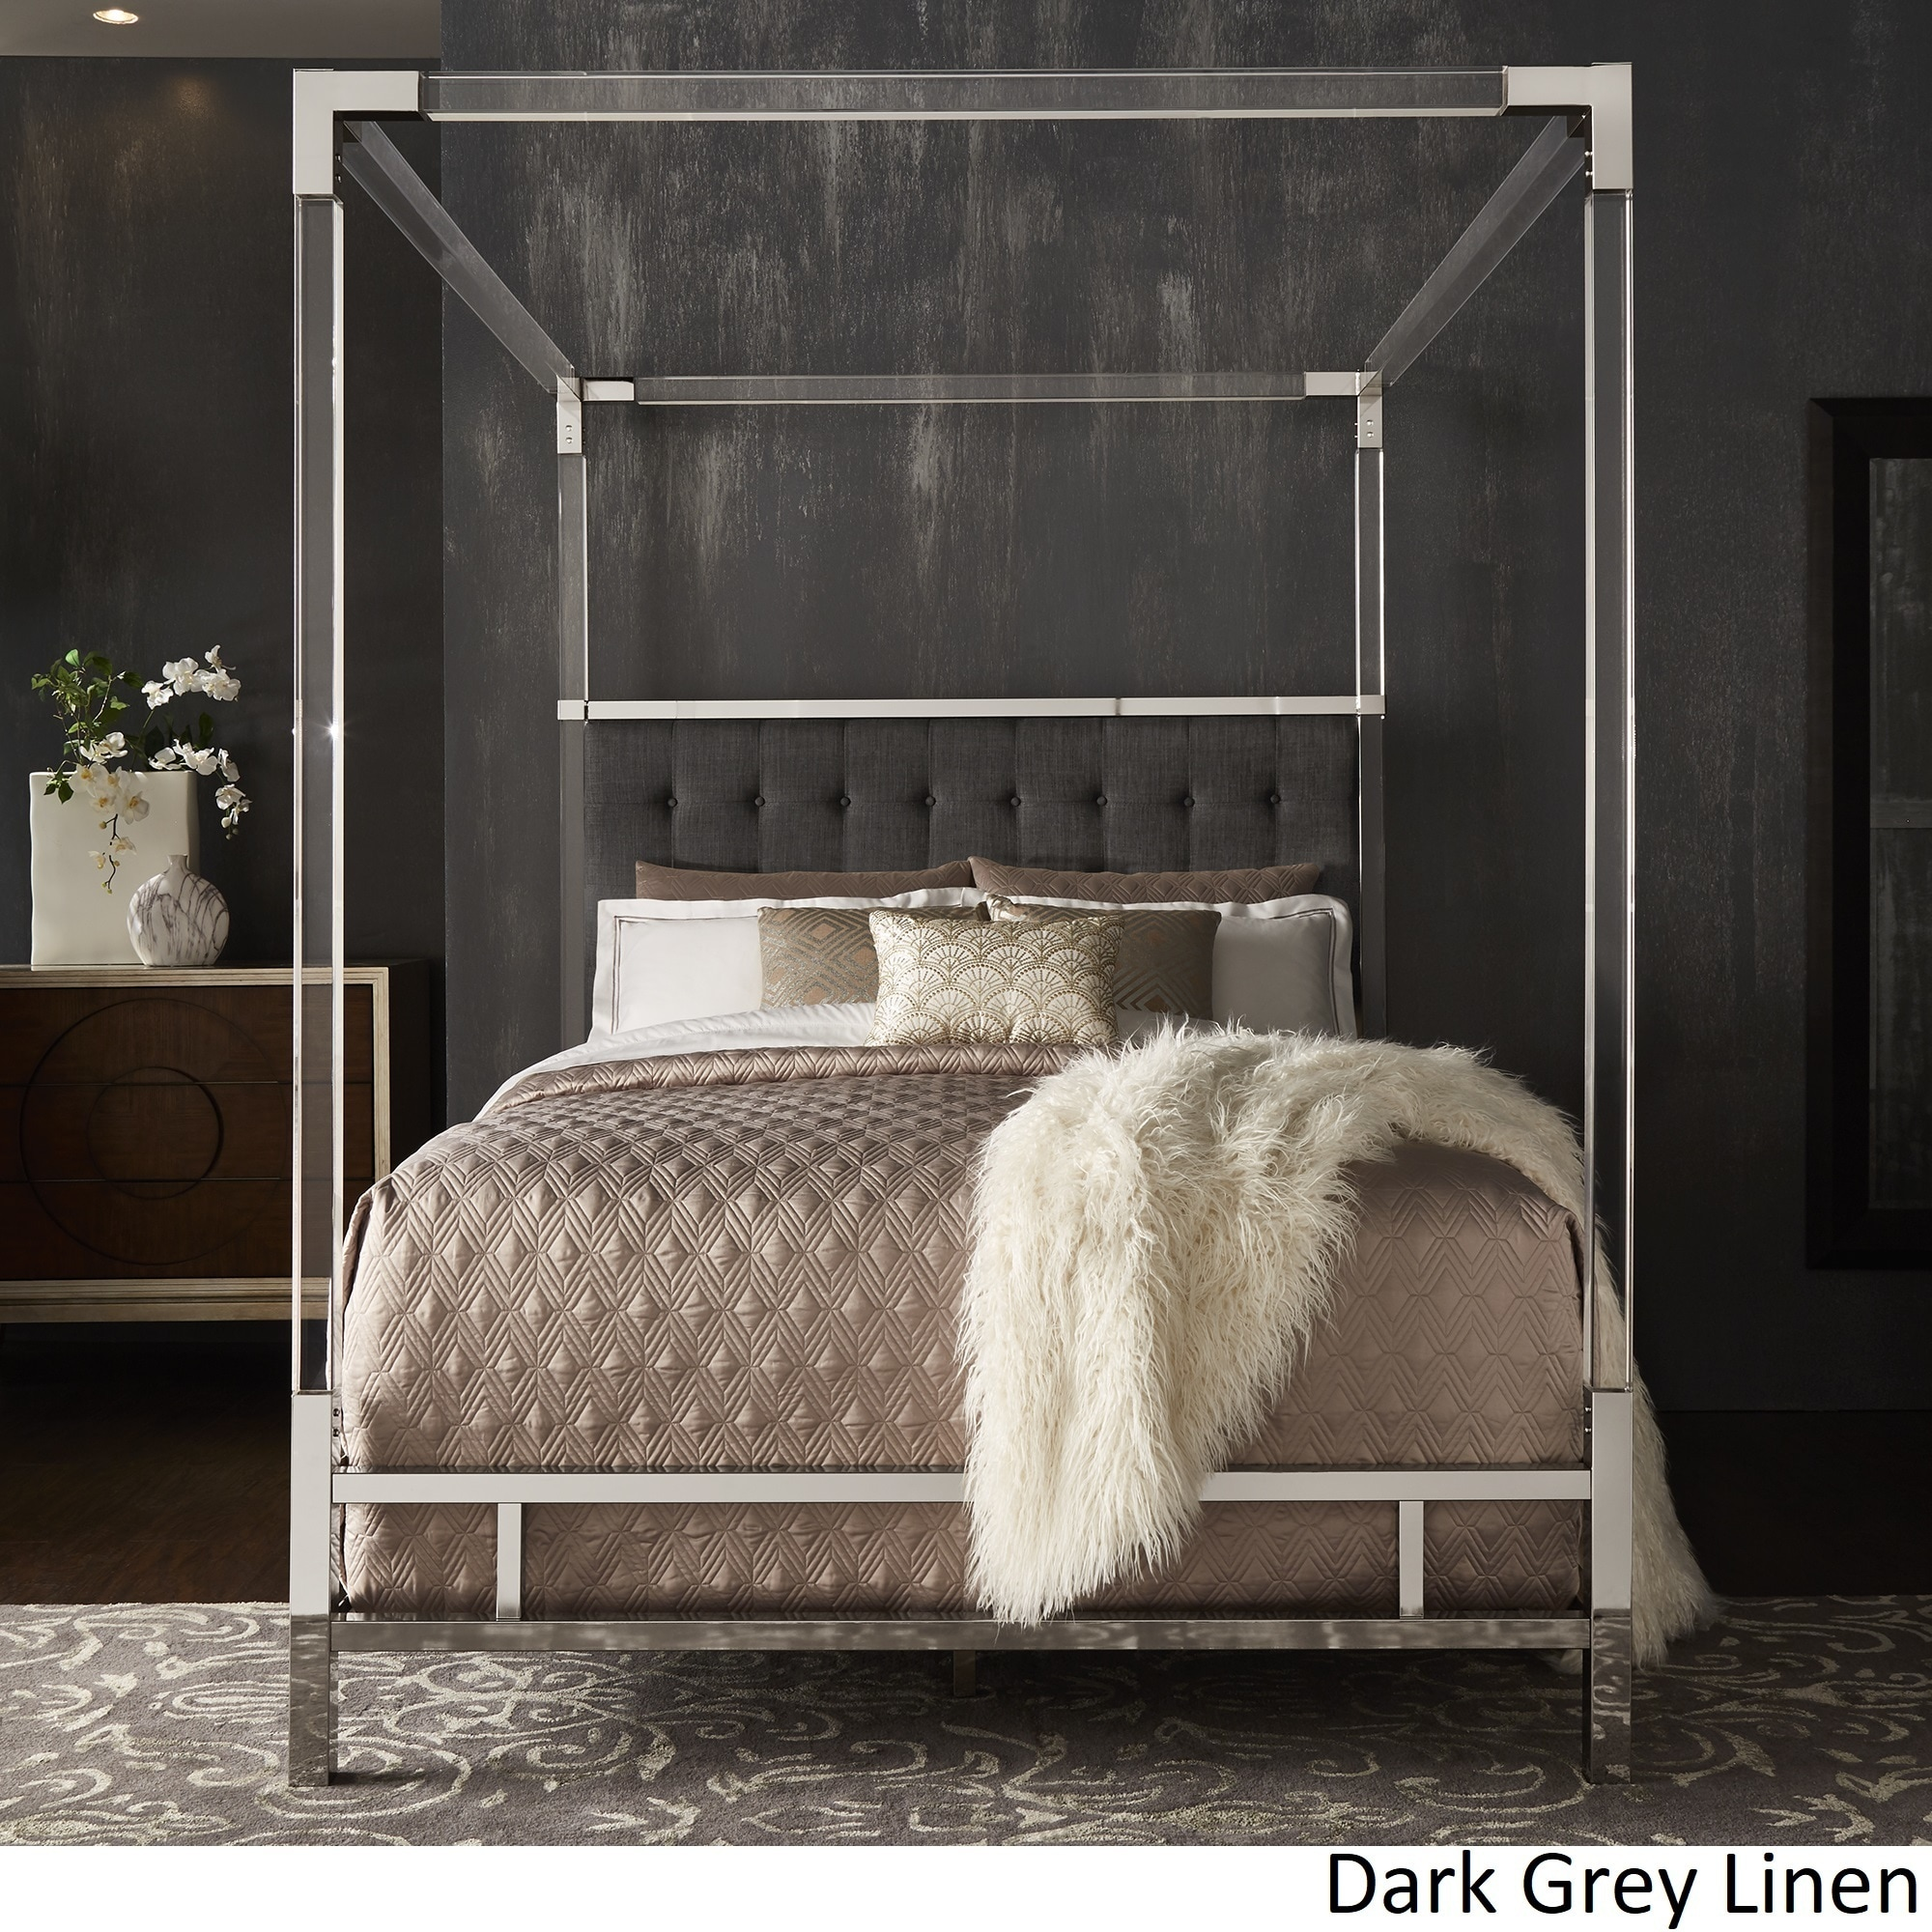 Shop Reid Acrylic and Chrome Canopy Bed with Tufted Headboard by iNSPIRE Q Bold - Free Shipping Today - Overstock - 19448217 & Shop Reid Acrylic and Chrome Canopy Bed with Tufted Headboard by ...